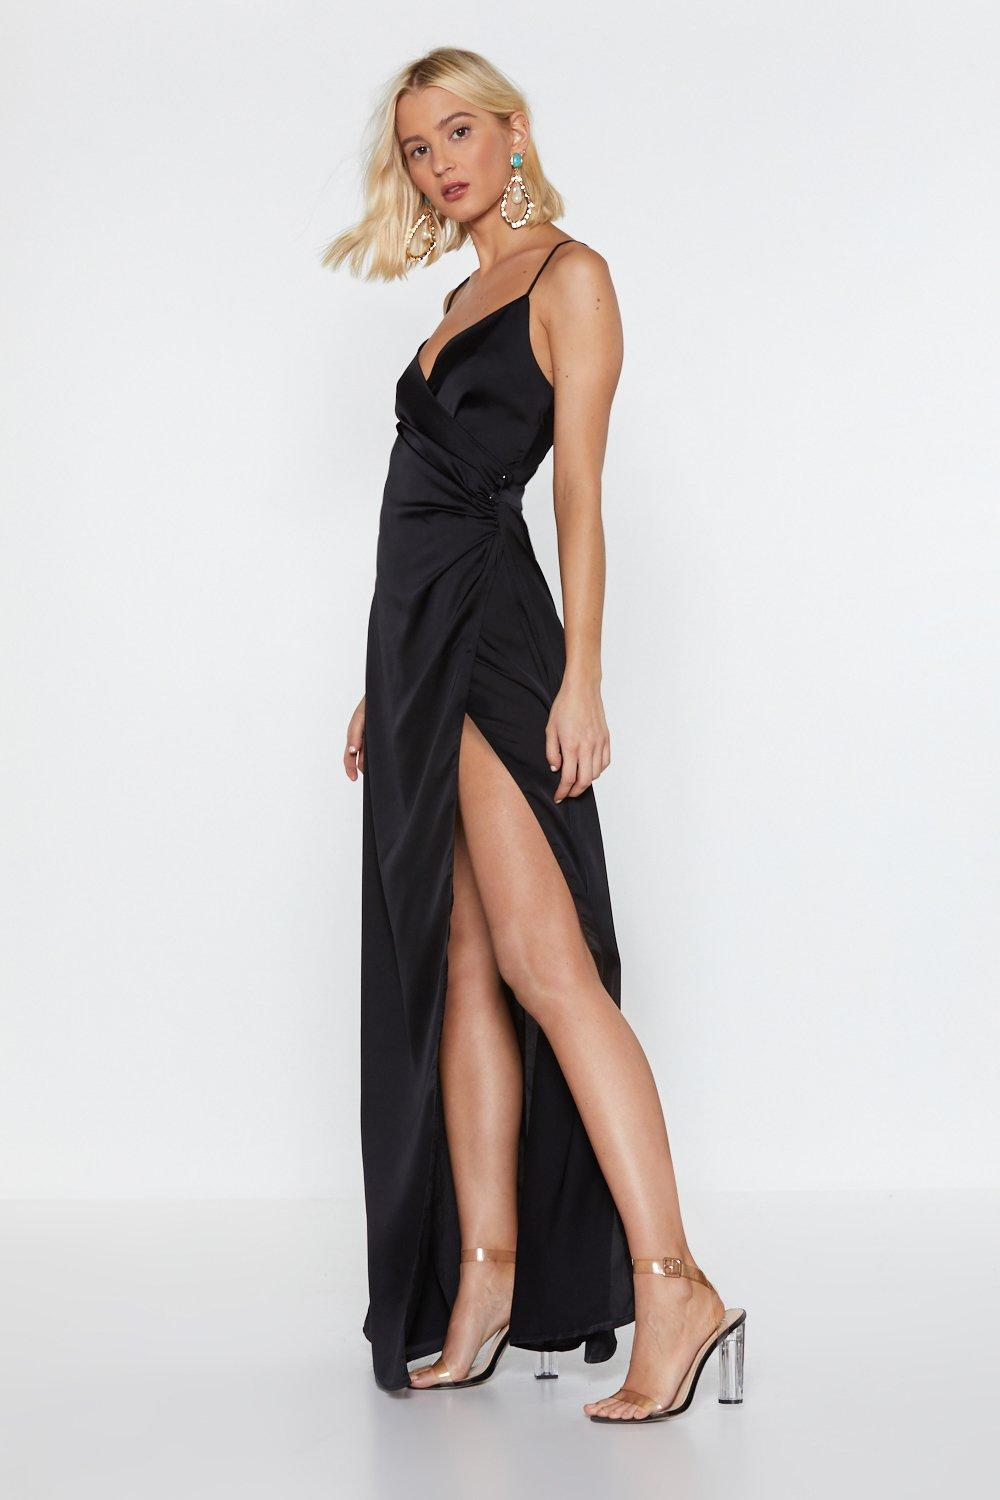 d321bf60754 Womens Black Cowl Play Satin Maxi Dress. Hover to zoom